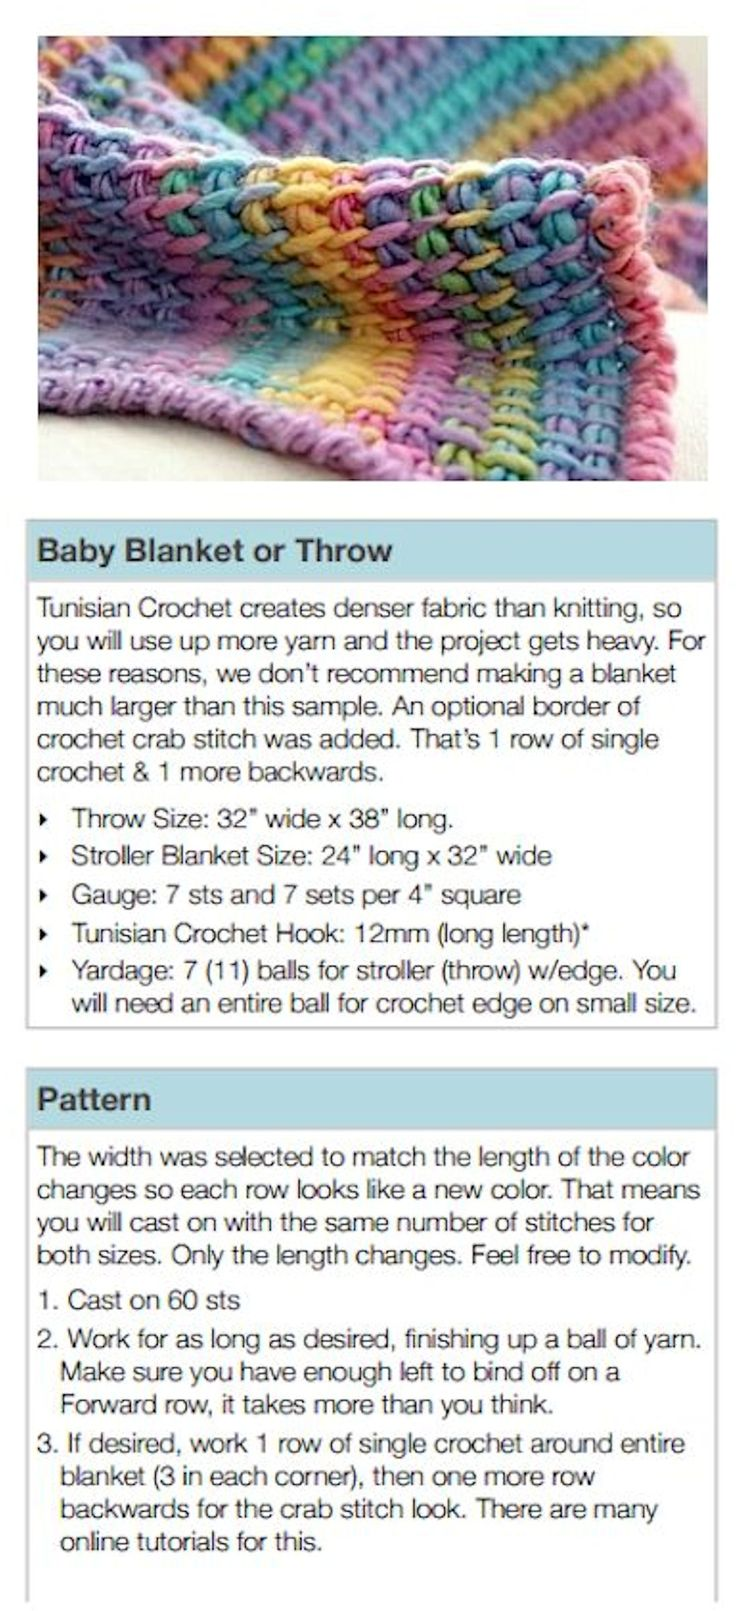 Tunisian Crochet – Blanket (to make a larger size, double the skeins of yarn needed and the cast on stitches… I would also use this hook www.pinterest.com… and method www.pinterest.com… – Deb)